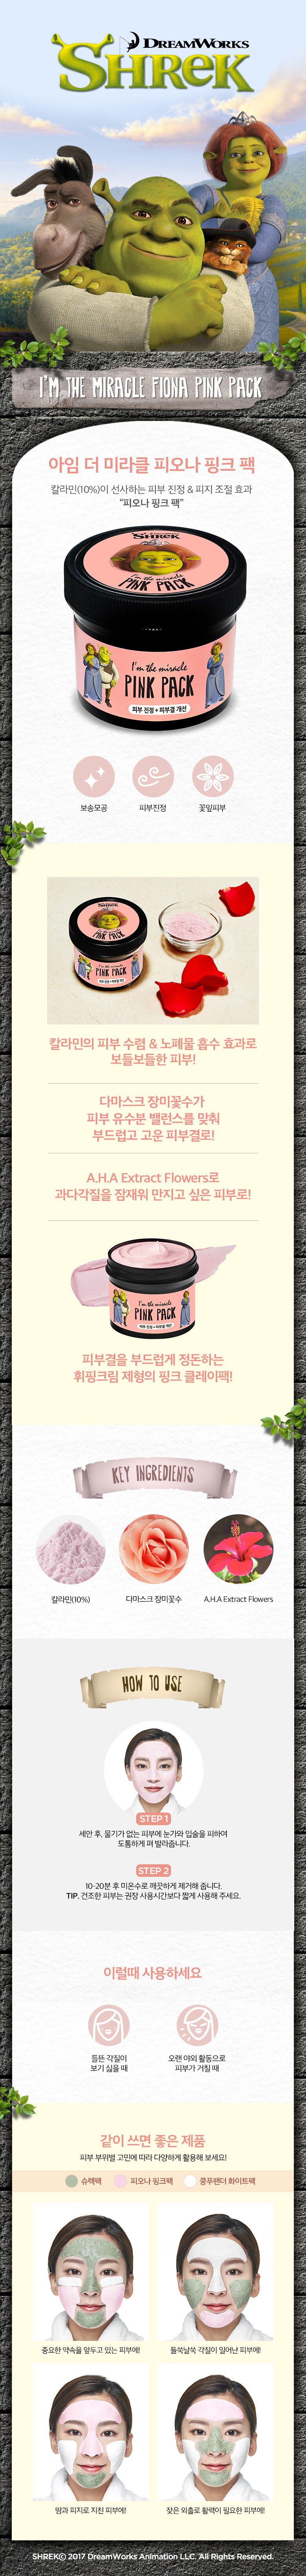 mat-na-tuoi-dat-set-chiet-xuat-tu-hoa-hong-i-m-the-miracle-pink-pack-100g-cua-olive-young